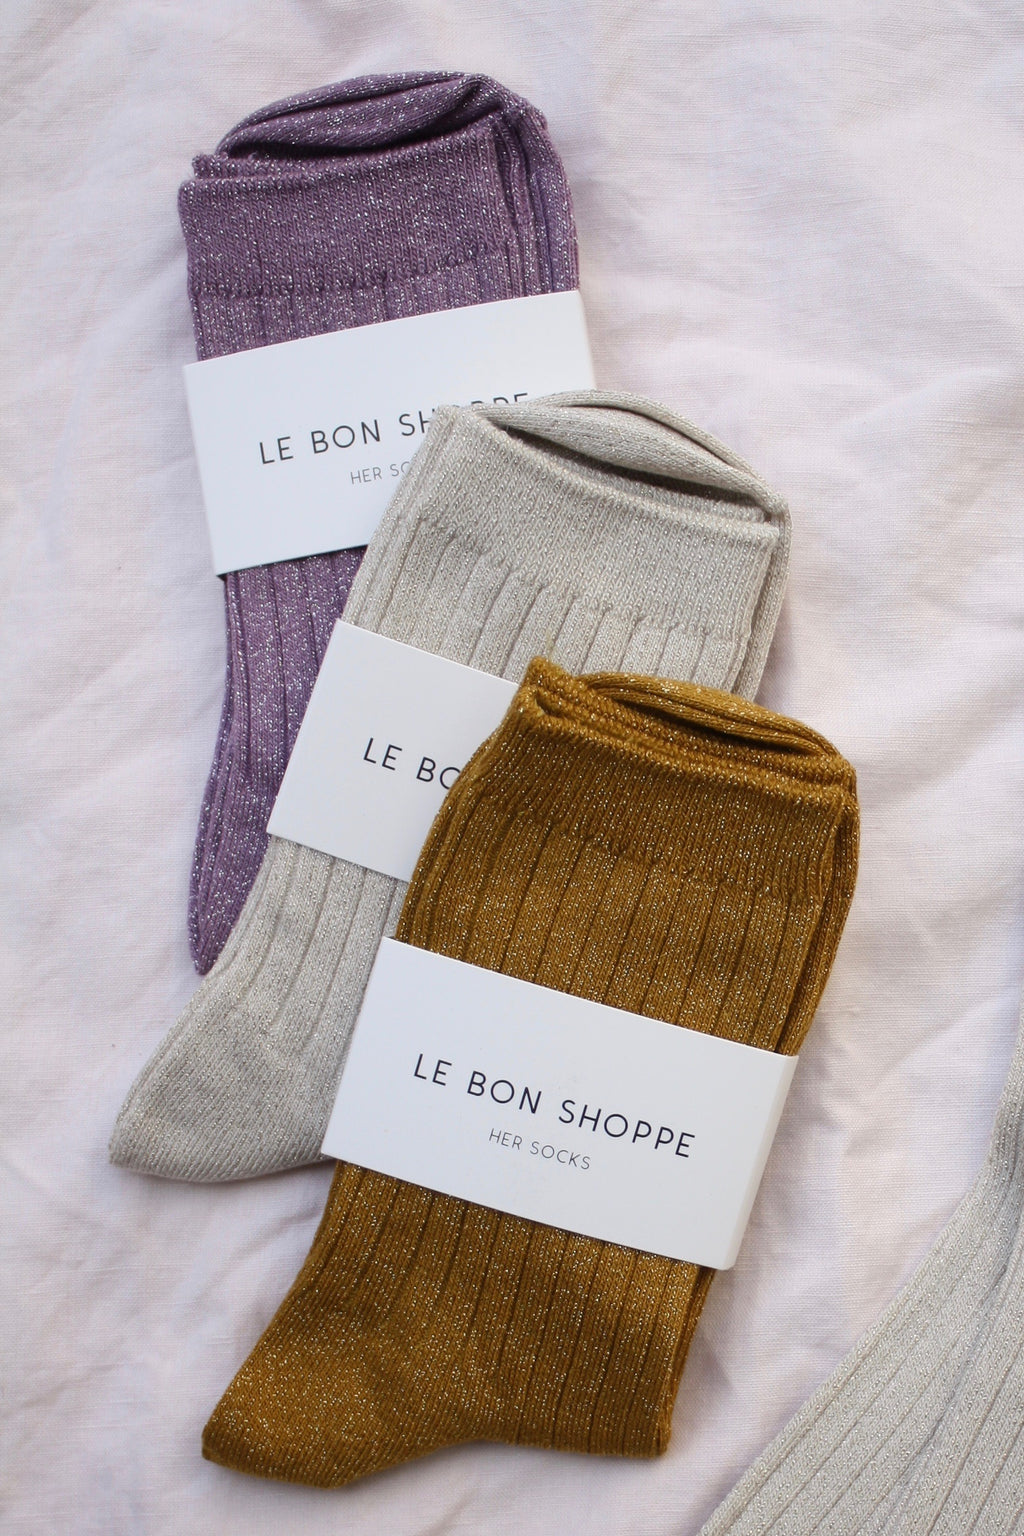 Le Bon Shoppe glitter socks in available colors: Lilac, Ivory and Mustard